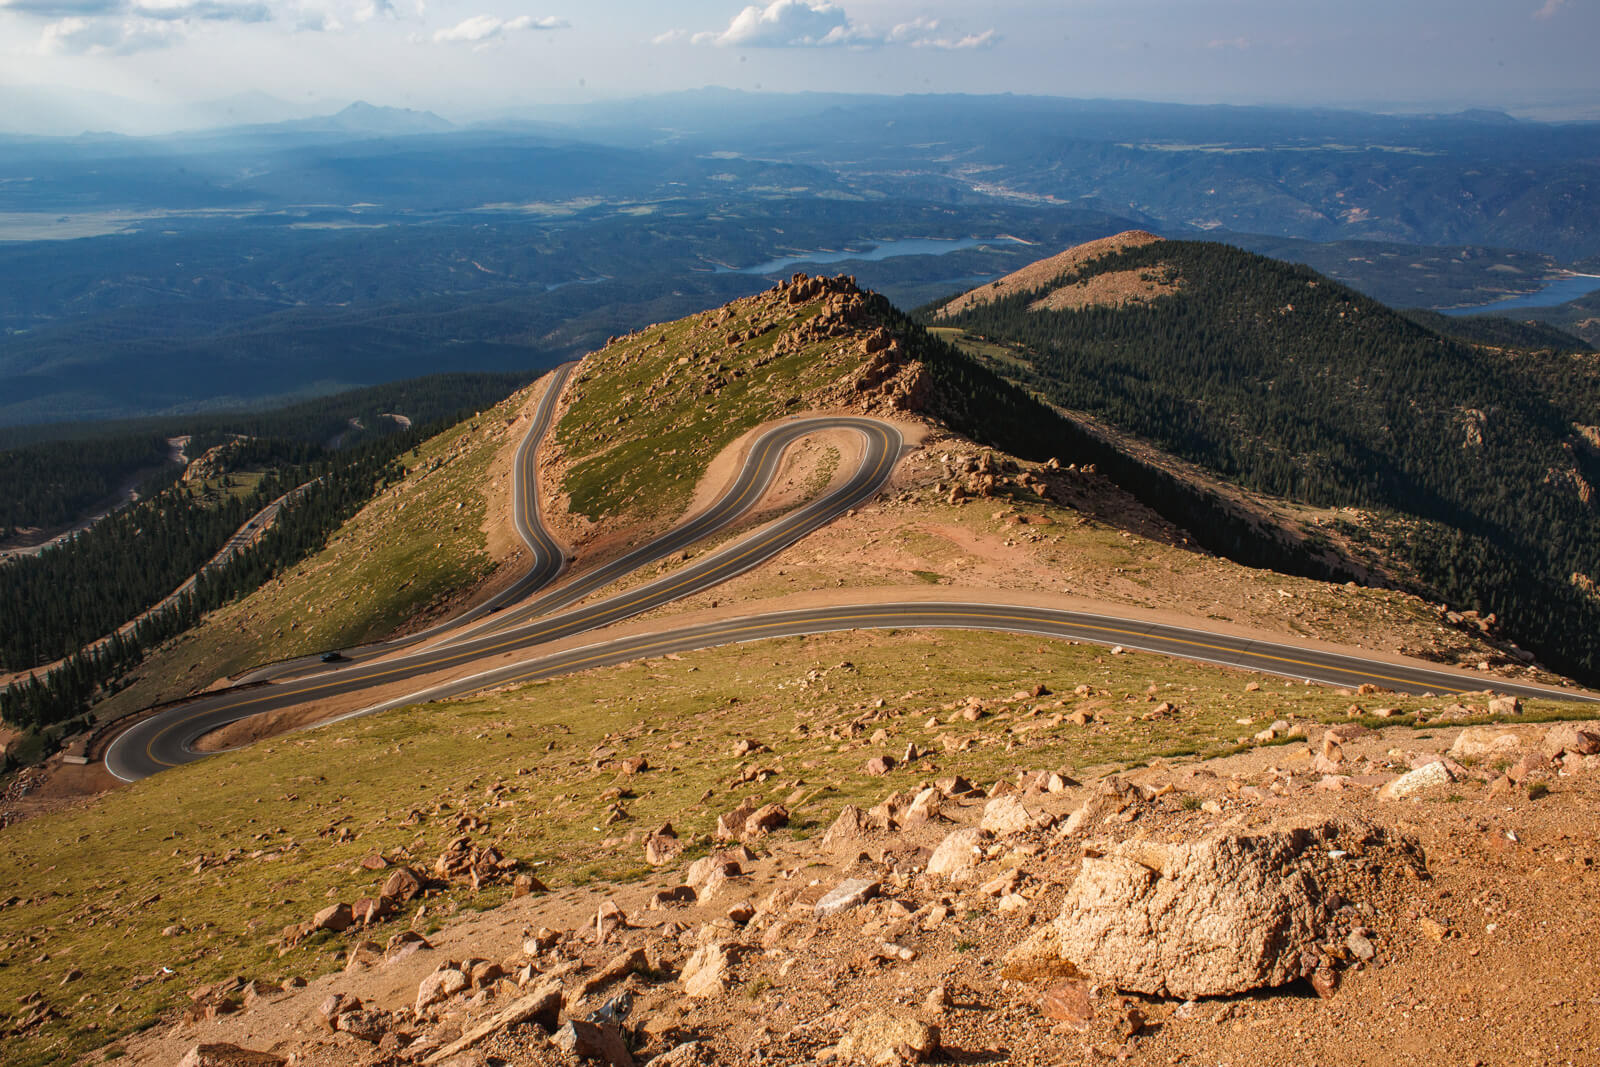 Looking down at the winding road up Pike's Peak in Colorado